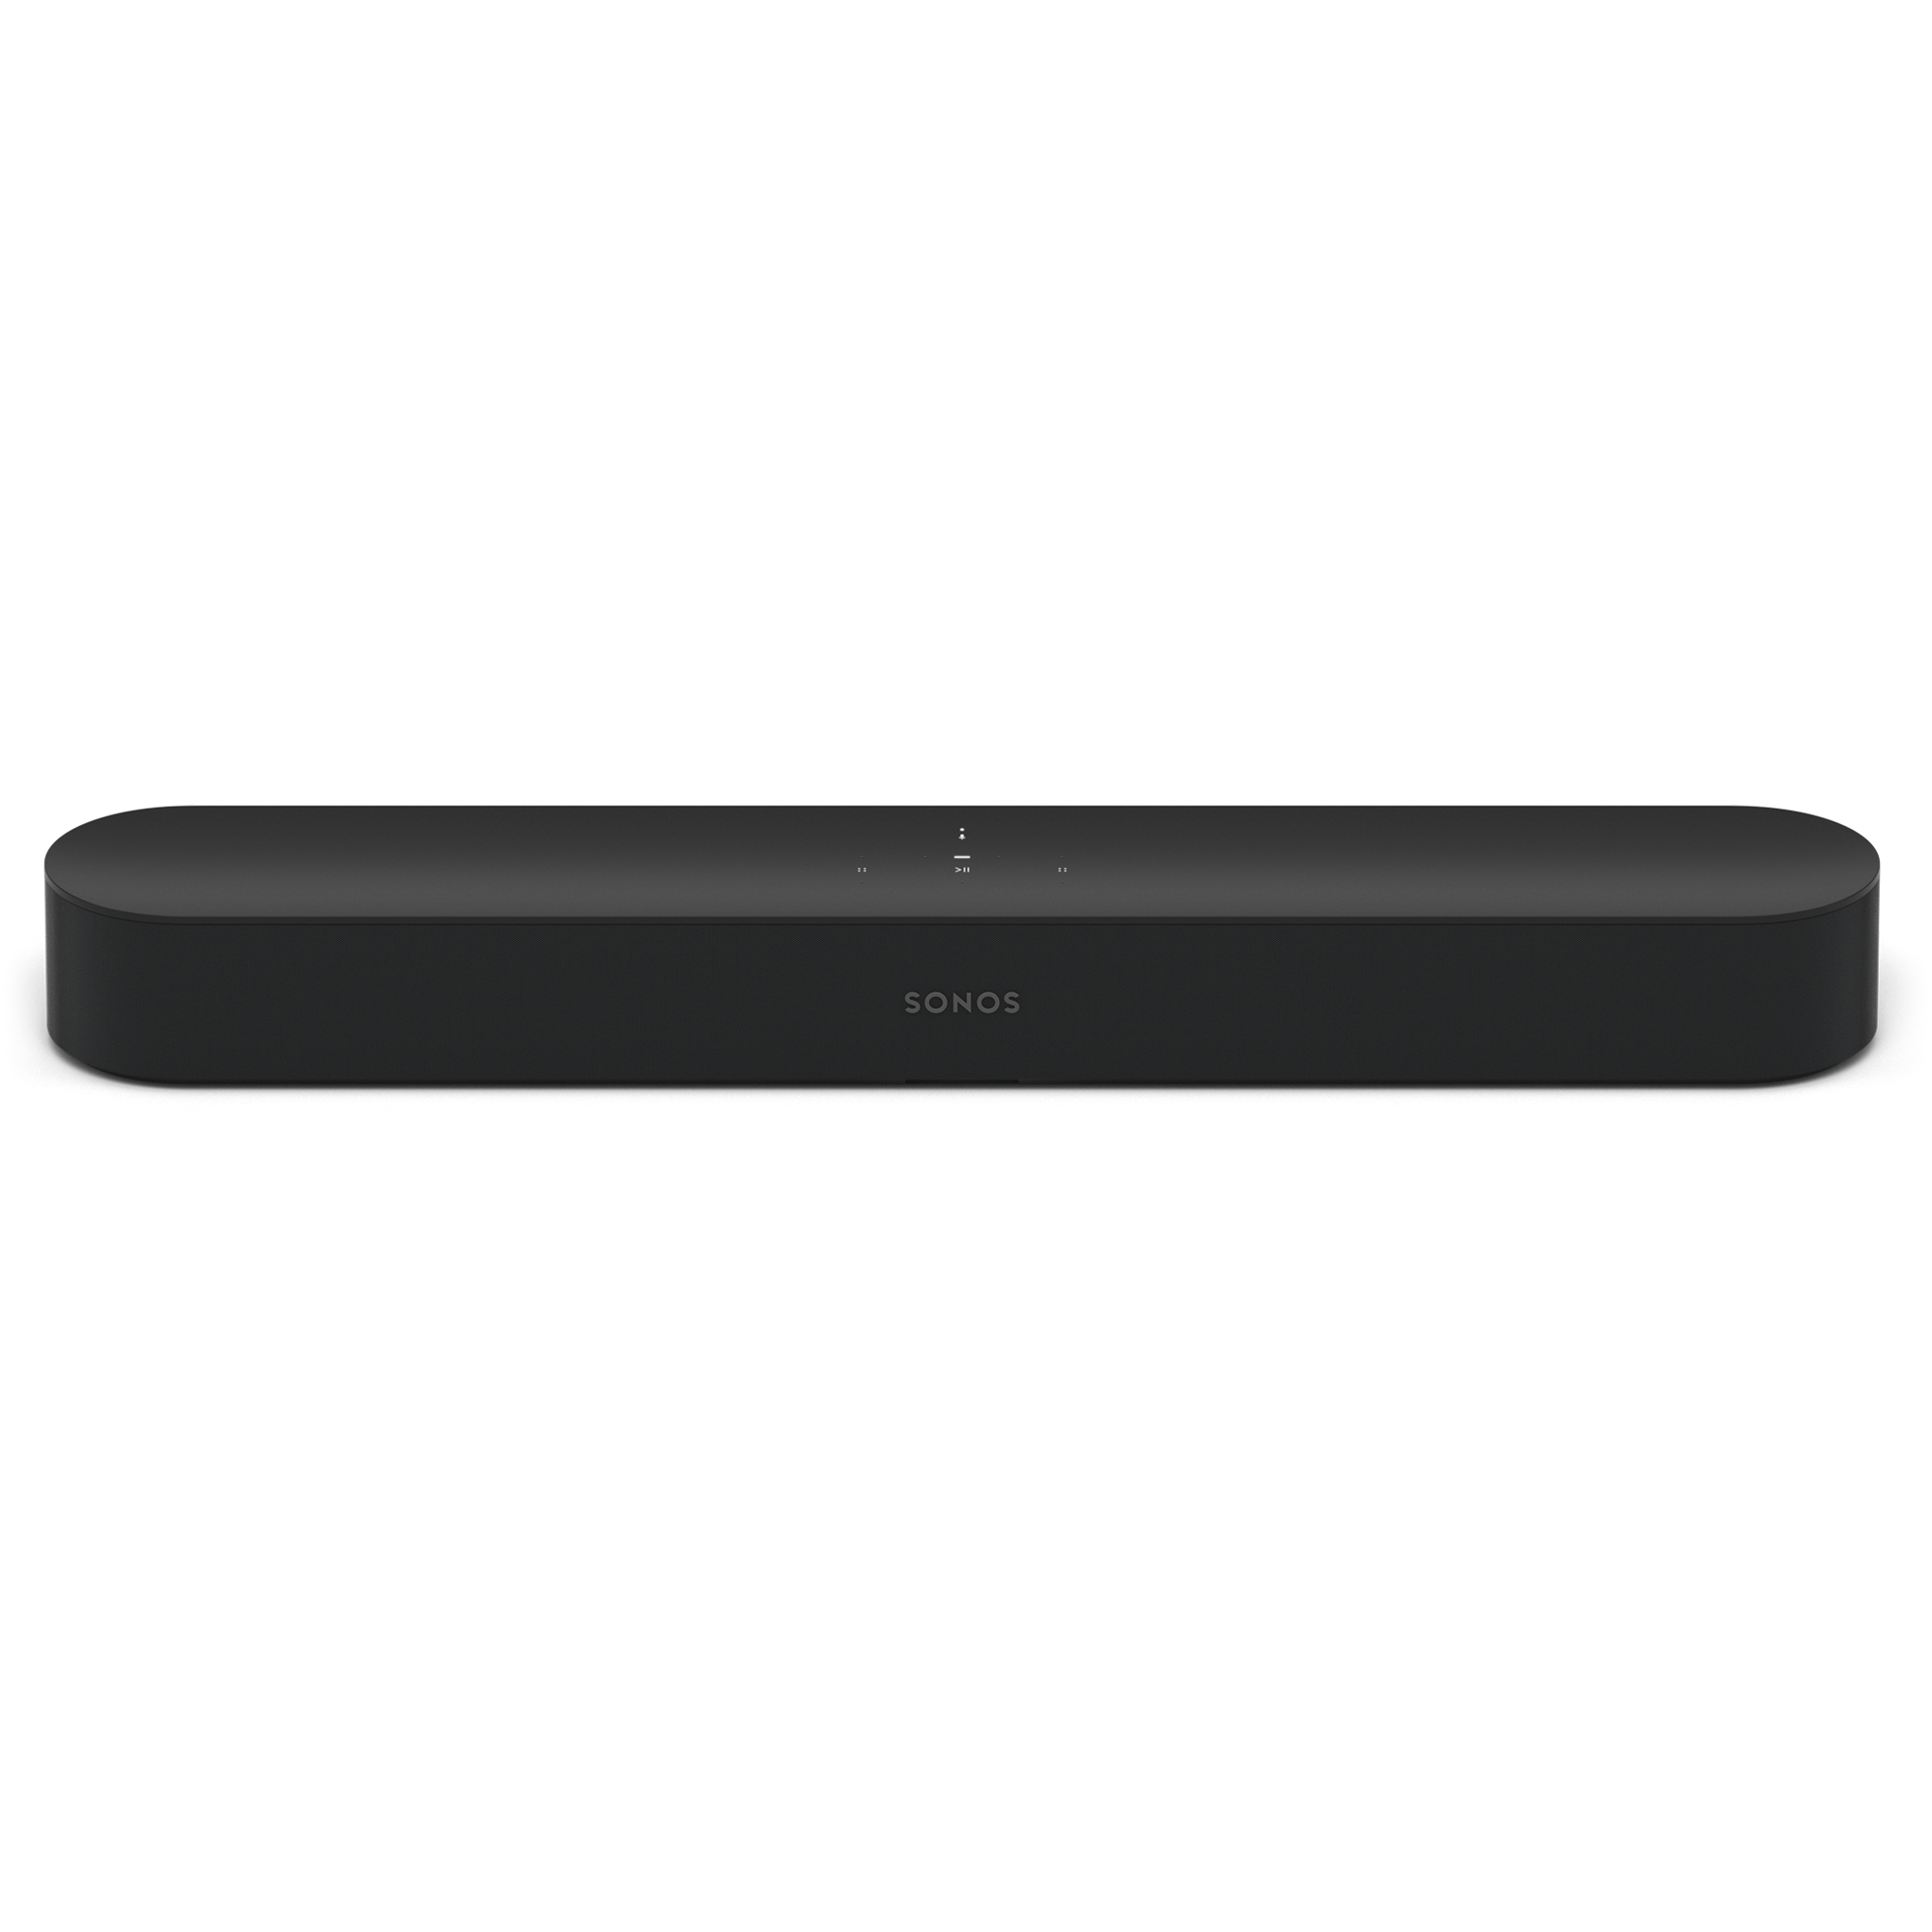 Beam_Smart_TV_Soundbar__Wireless__Alexa_Voice_Control_&_AirPlay_Compatible__Black__Sonos